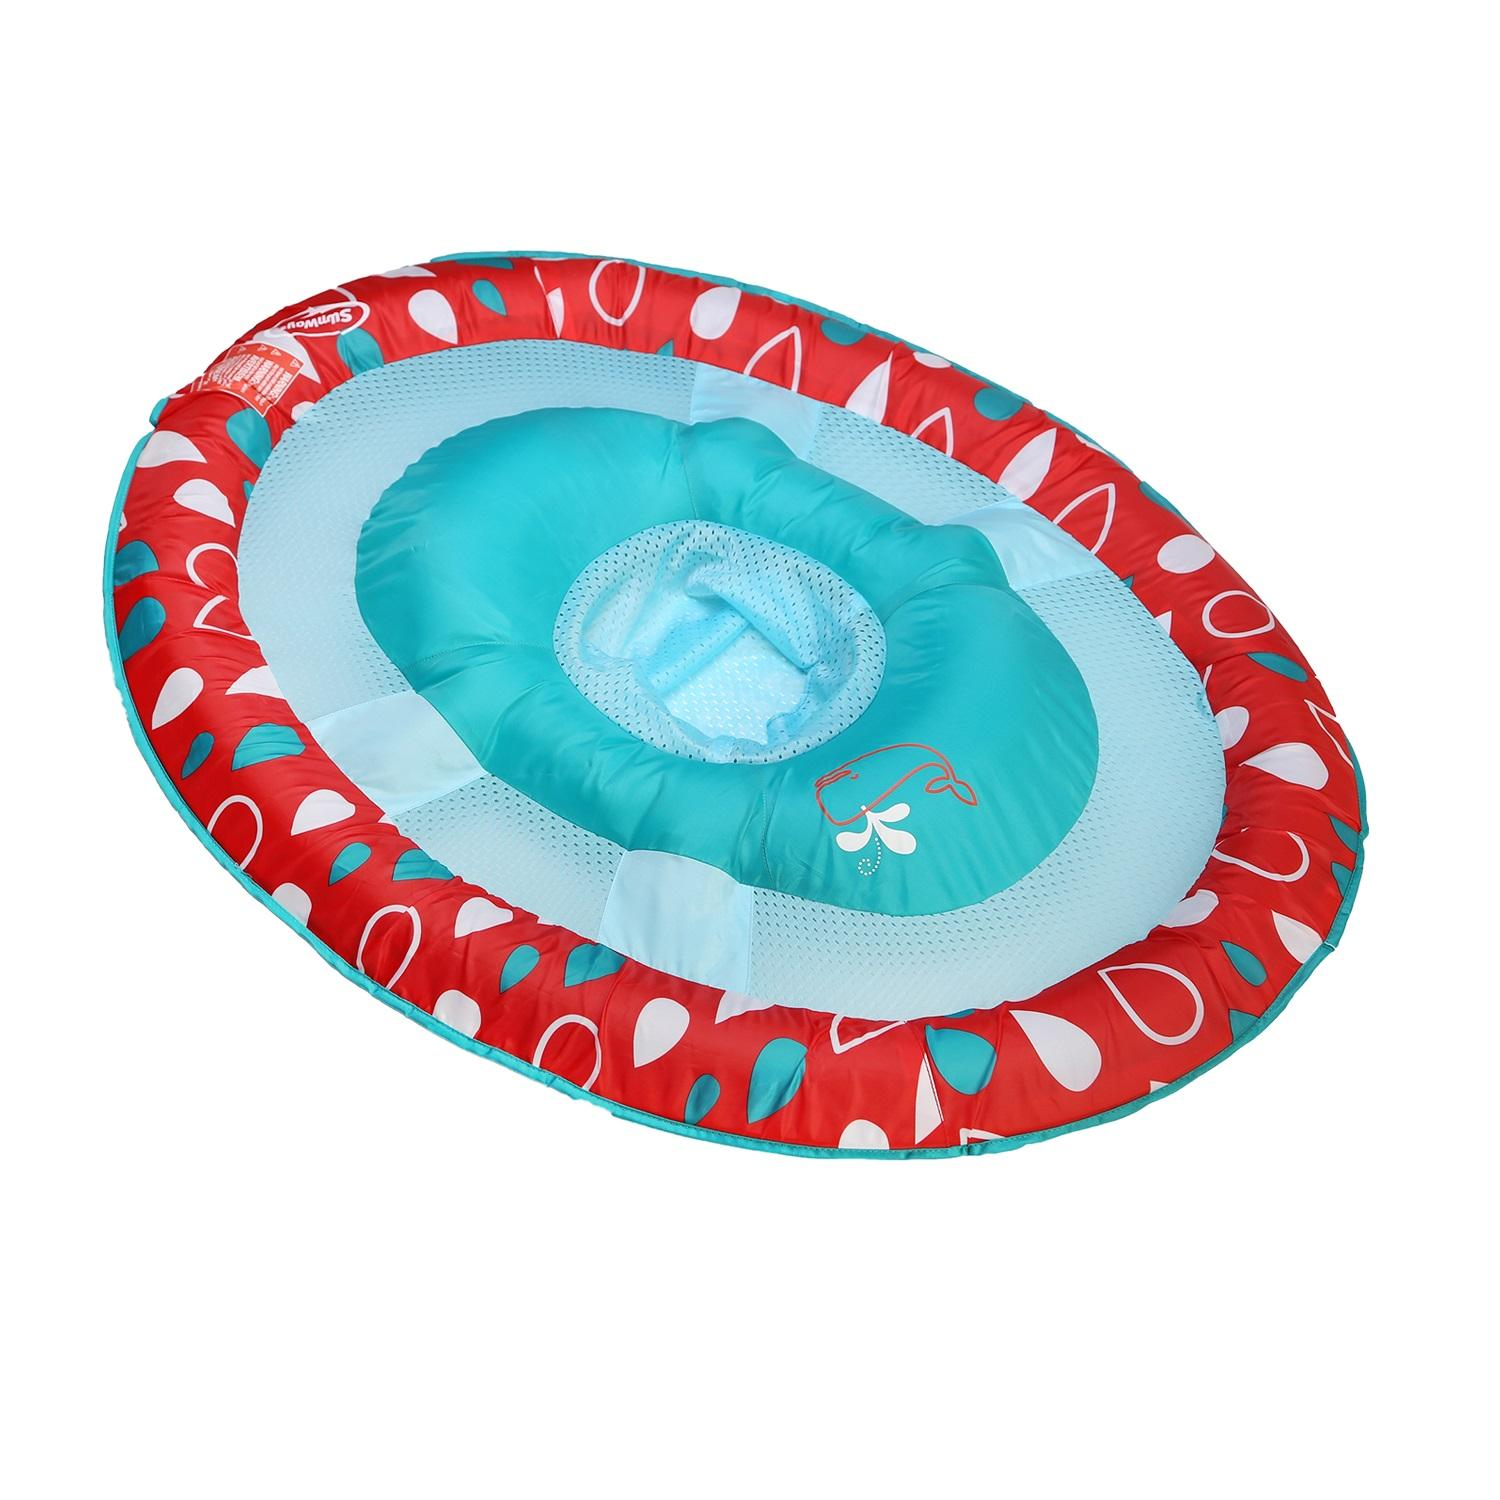 """36"""" Blue and Red Swimming Pool Step 1 Baby Spring Float - image 1 de 2"""